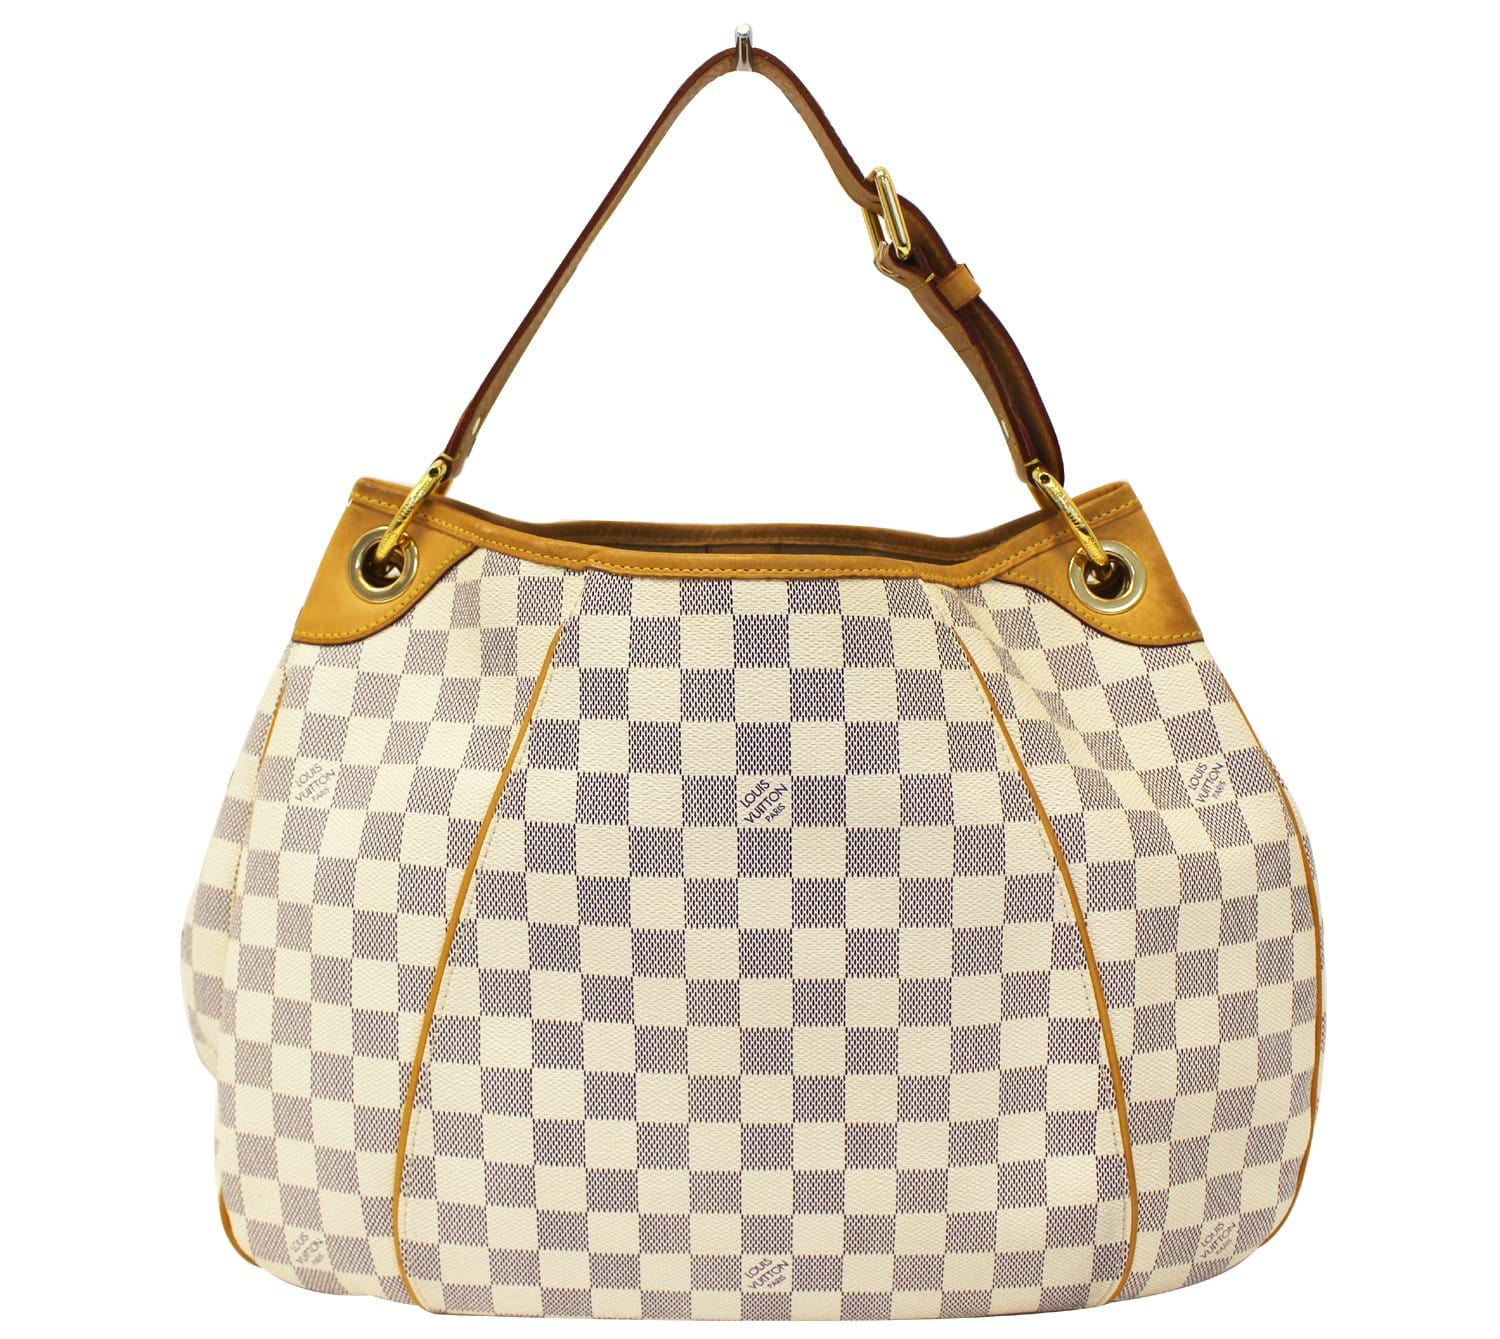 715b47613e6 Authentic LOUIS VUITTON Galliera PM Damier Azur Shoulder Bag TT1786